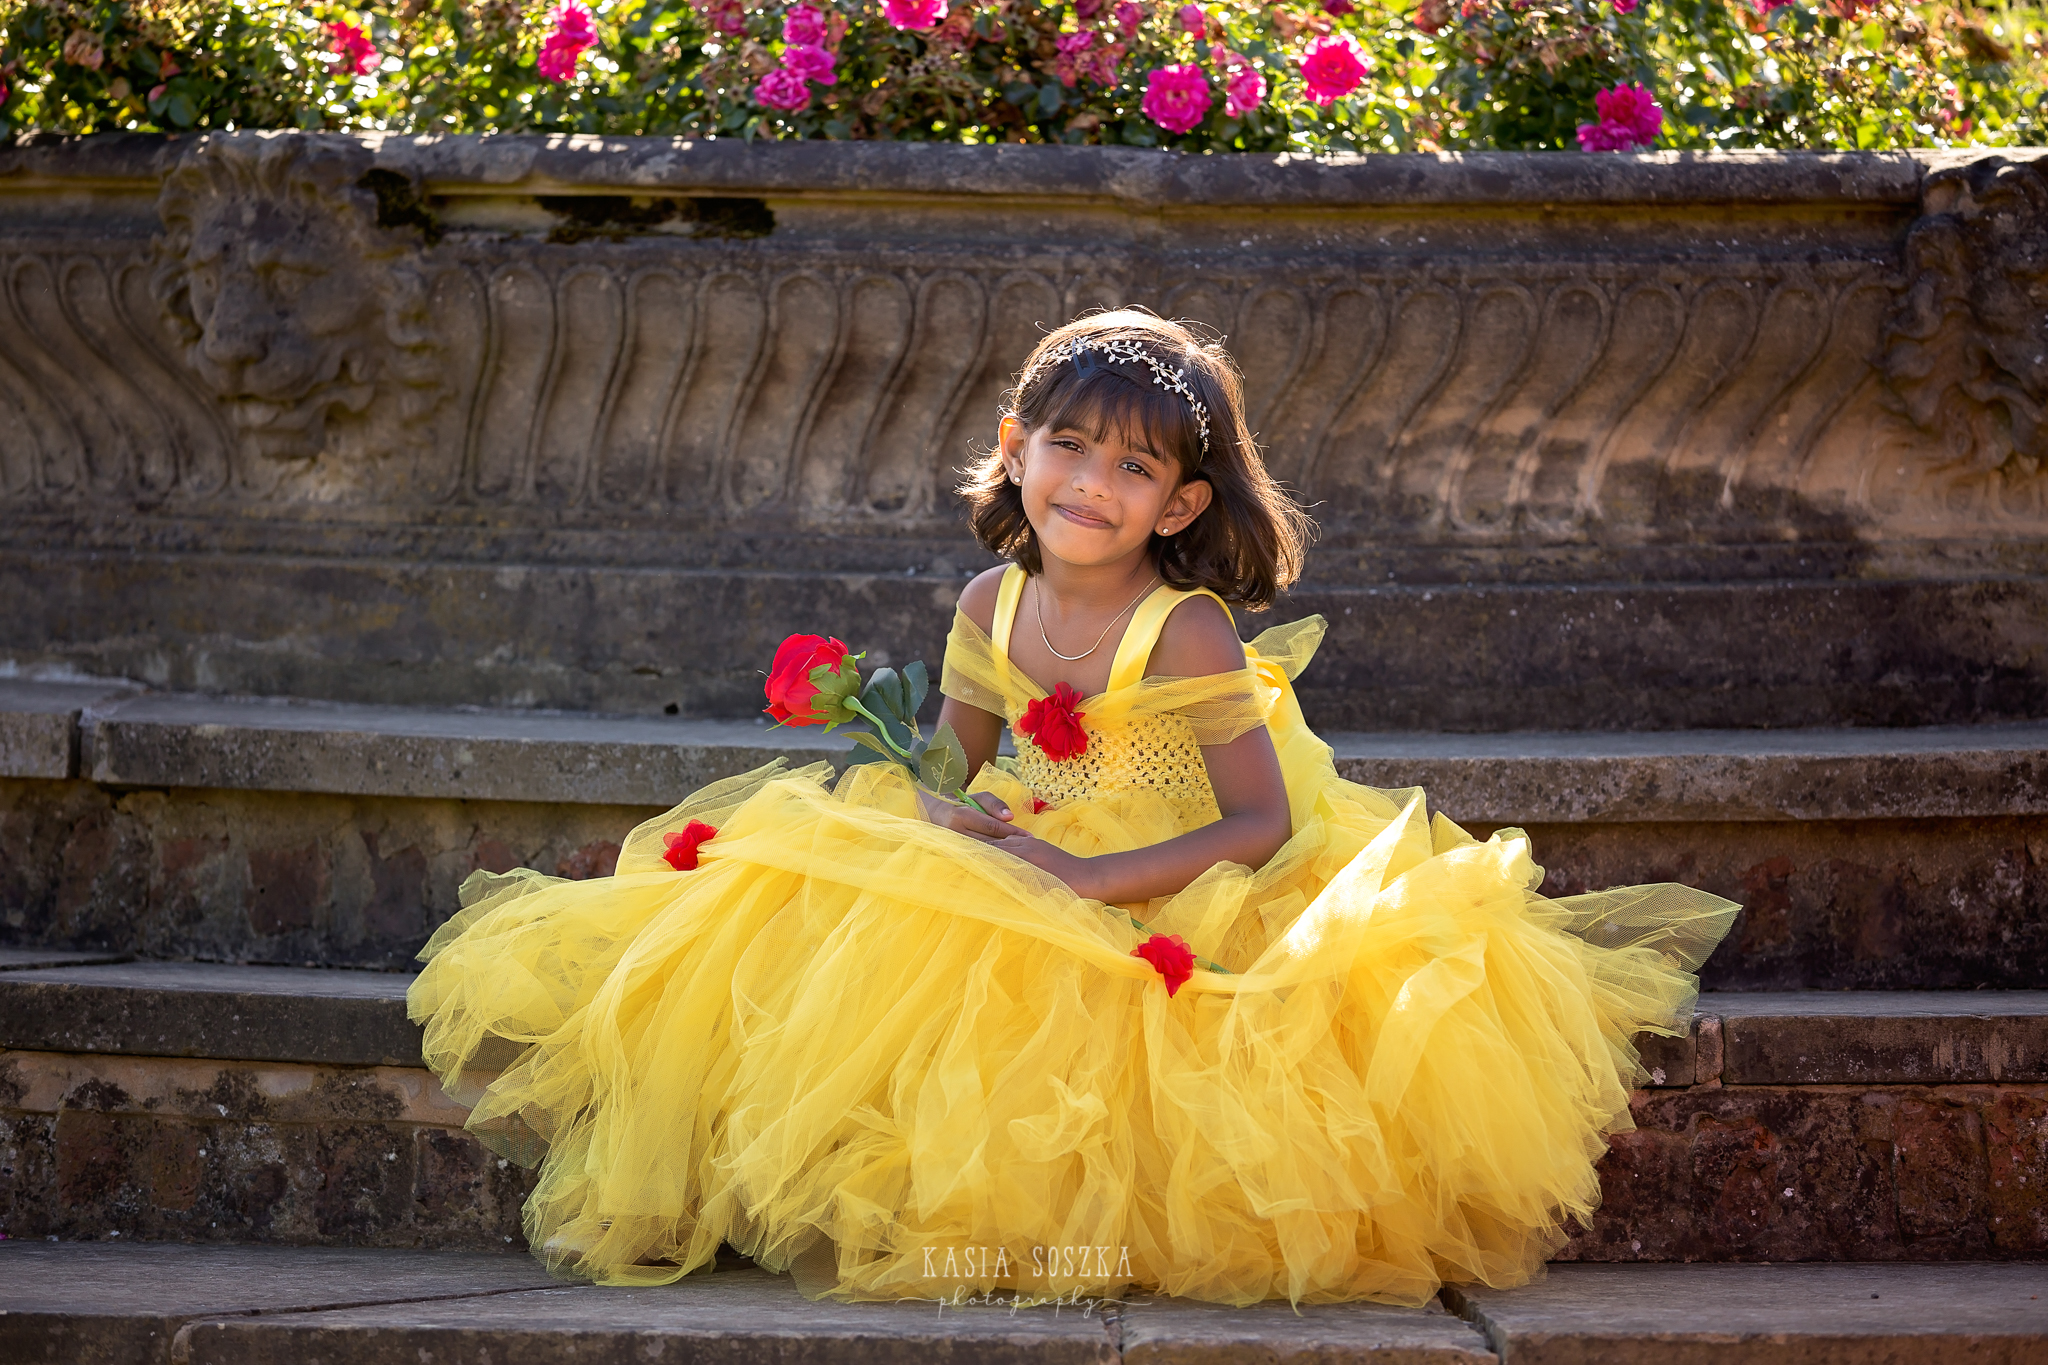 Child photography Leeds, child outdoor princess session Leeds, Yorkshire: beautiful little girl in a yellow princess dress in a garden